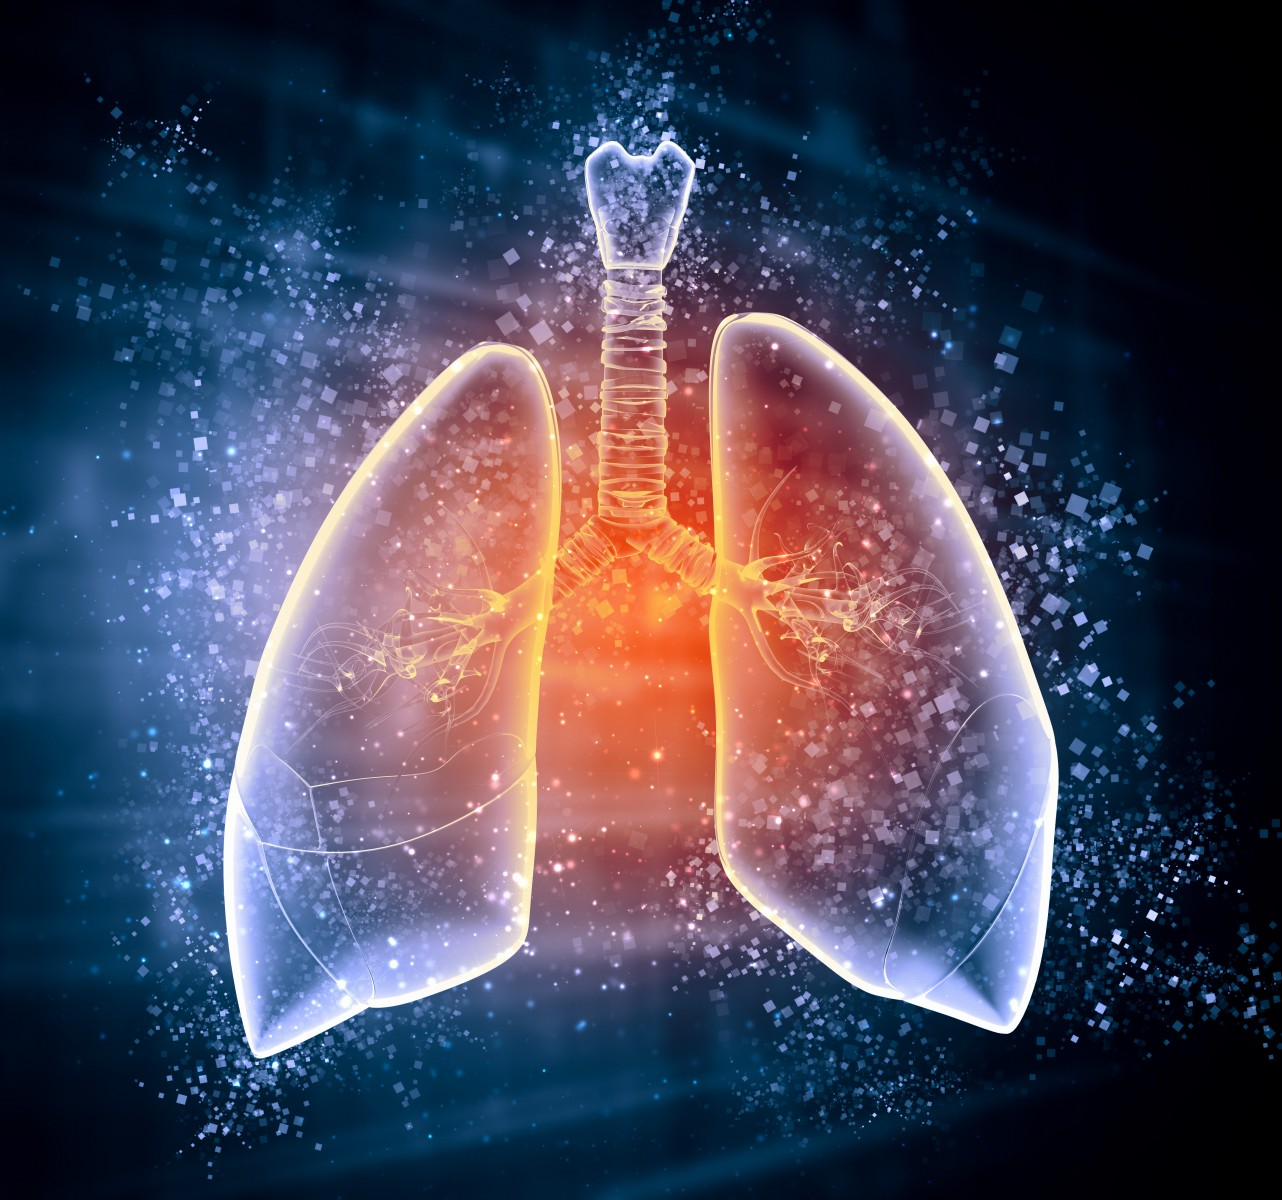 Treatment Algorithm Centered on Chest Physiotherapy May Minimize Lung Function Decline, Study Says